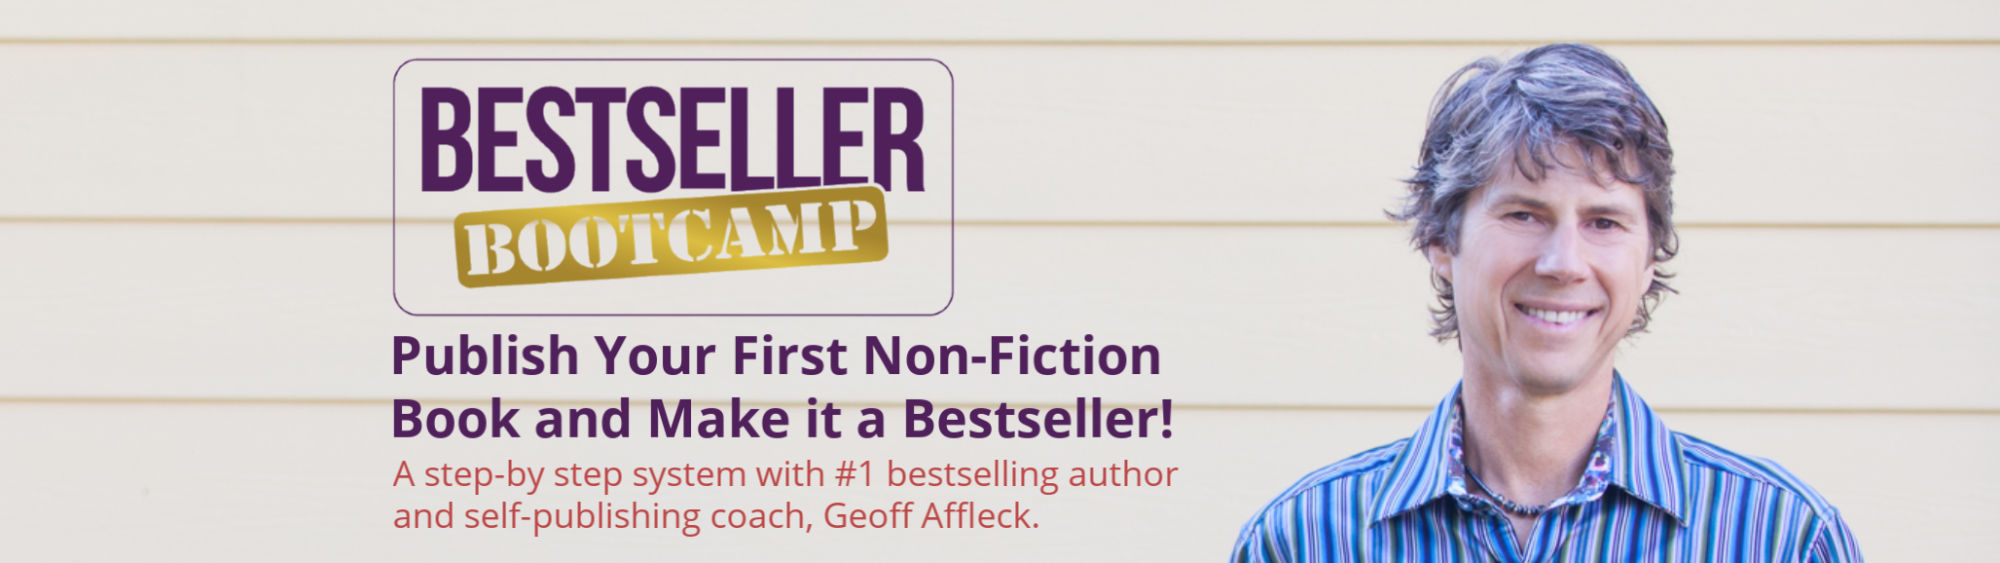 Bestseller Bootcamp with Geoff Affleck